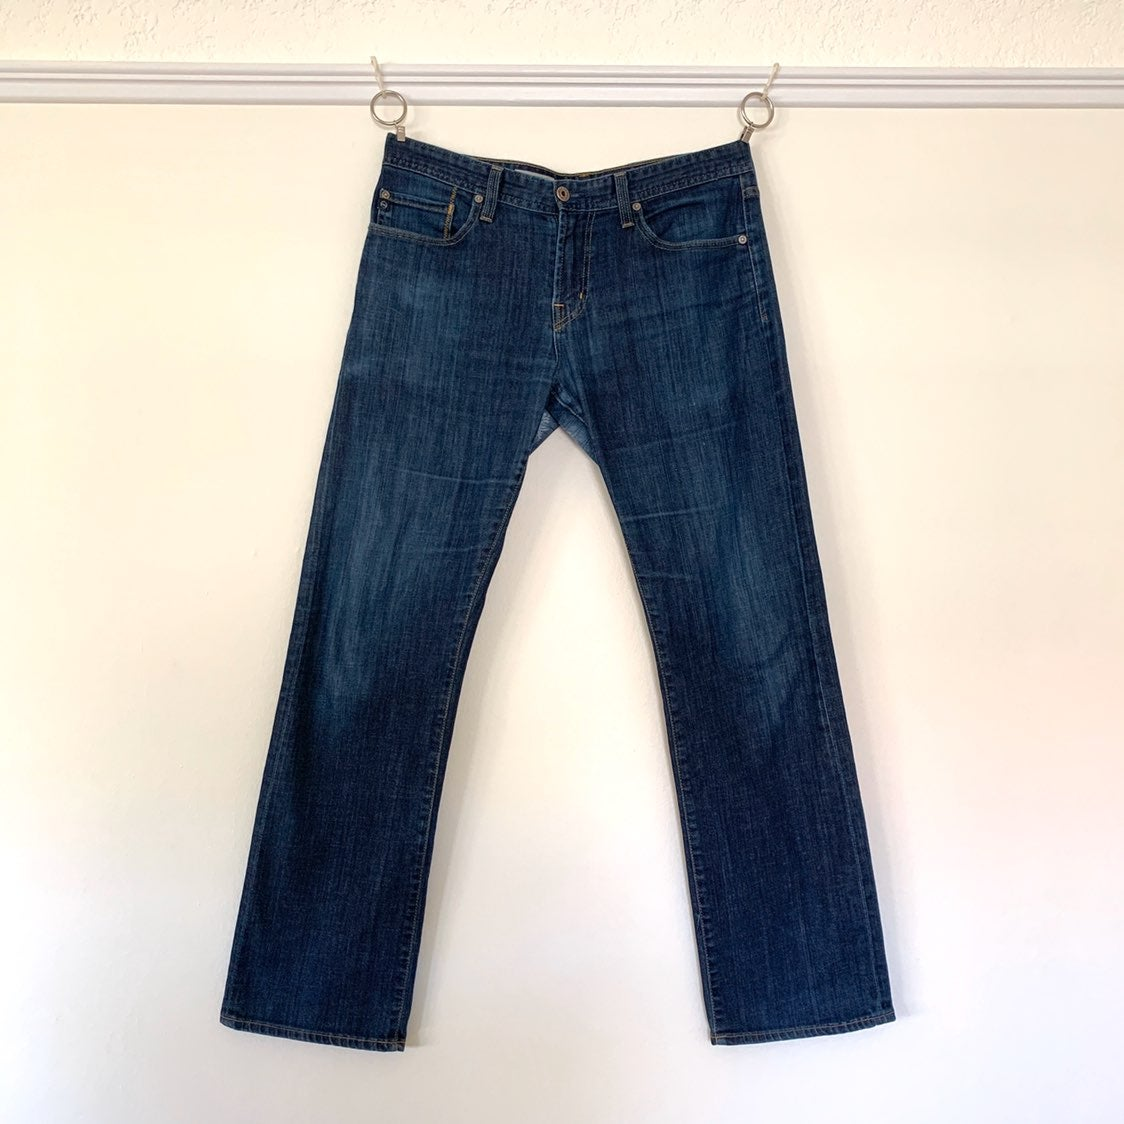 AG The Protege classic straight jeans